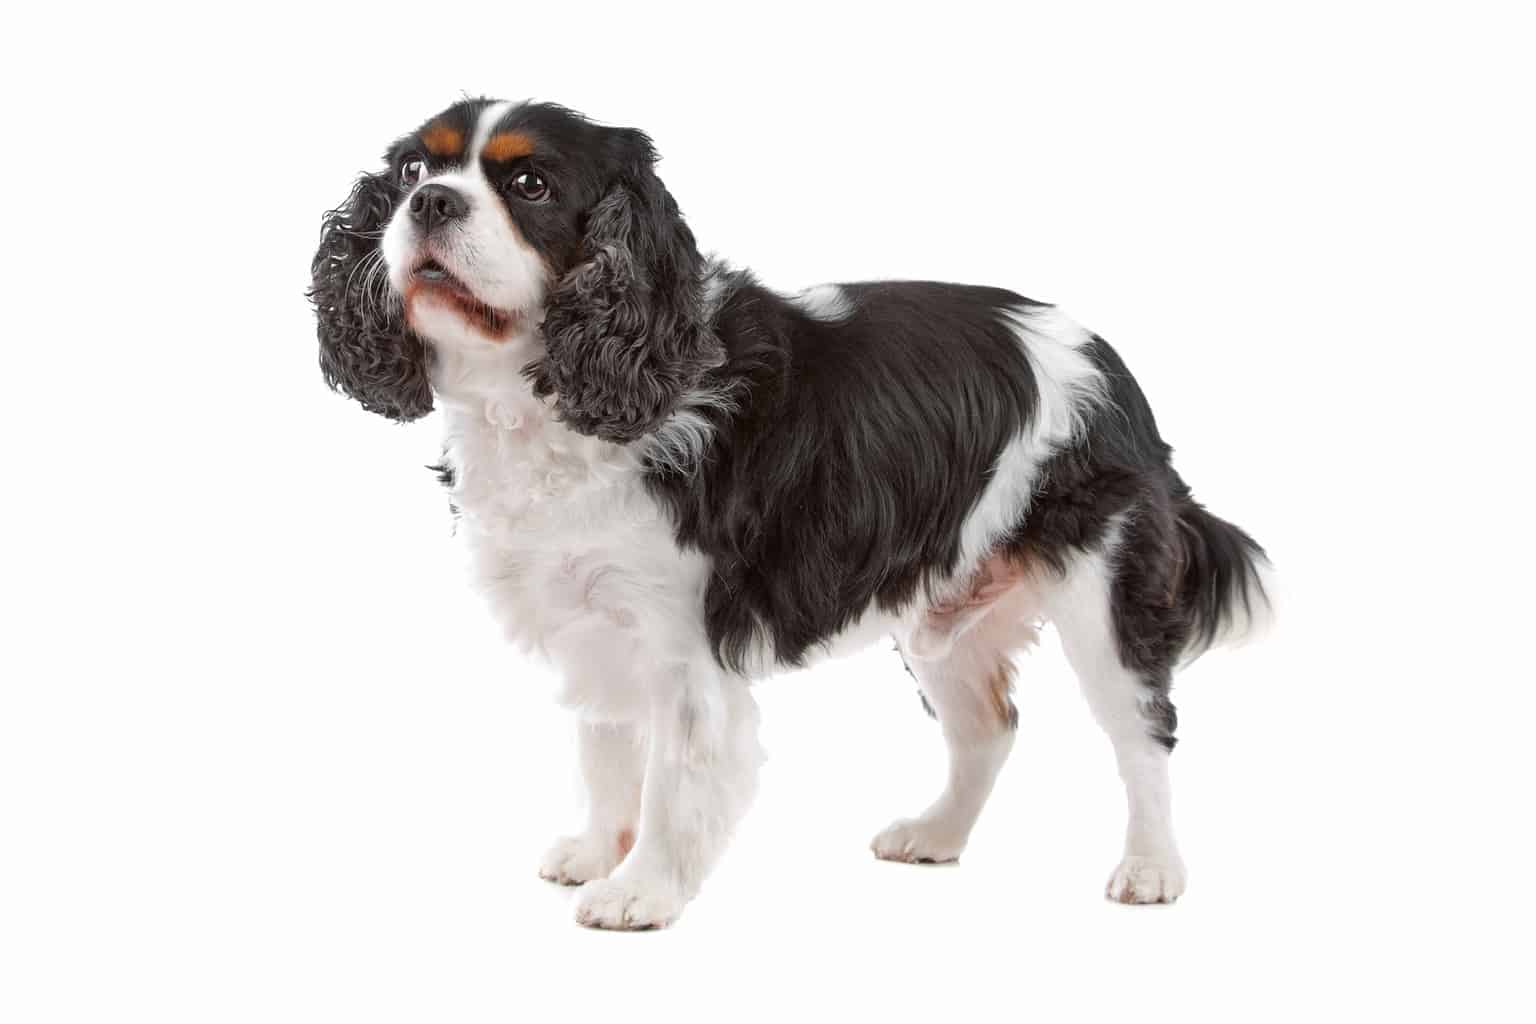 Cute Cavalier King Charles Spaniel dog standing, on a white background